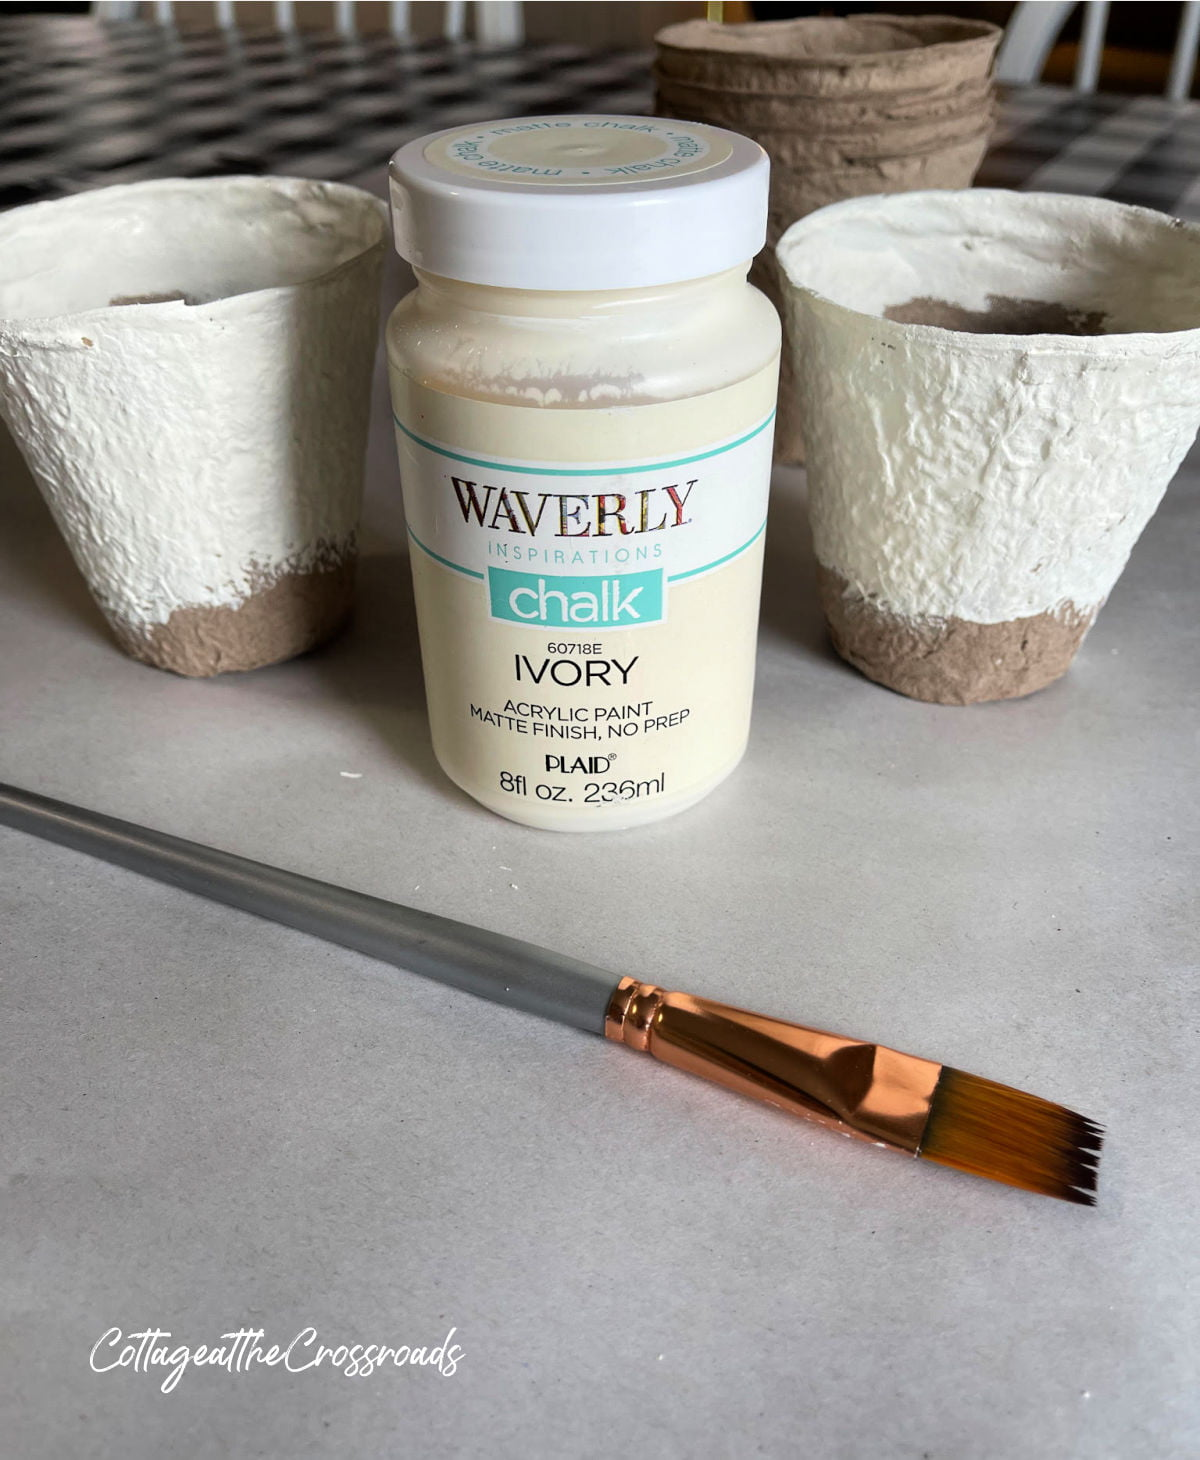 painted peat pots and a container of Waverly chalk paint in Ivory